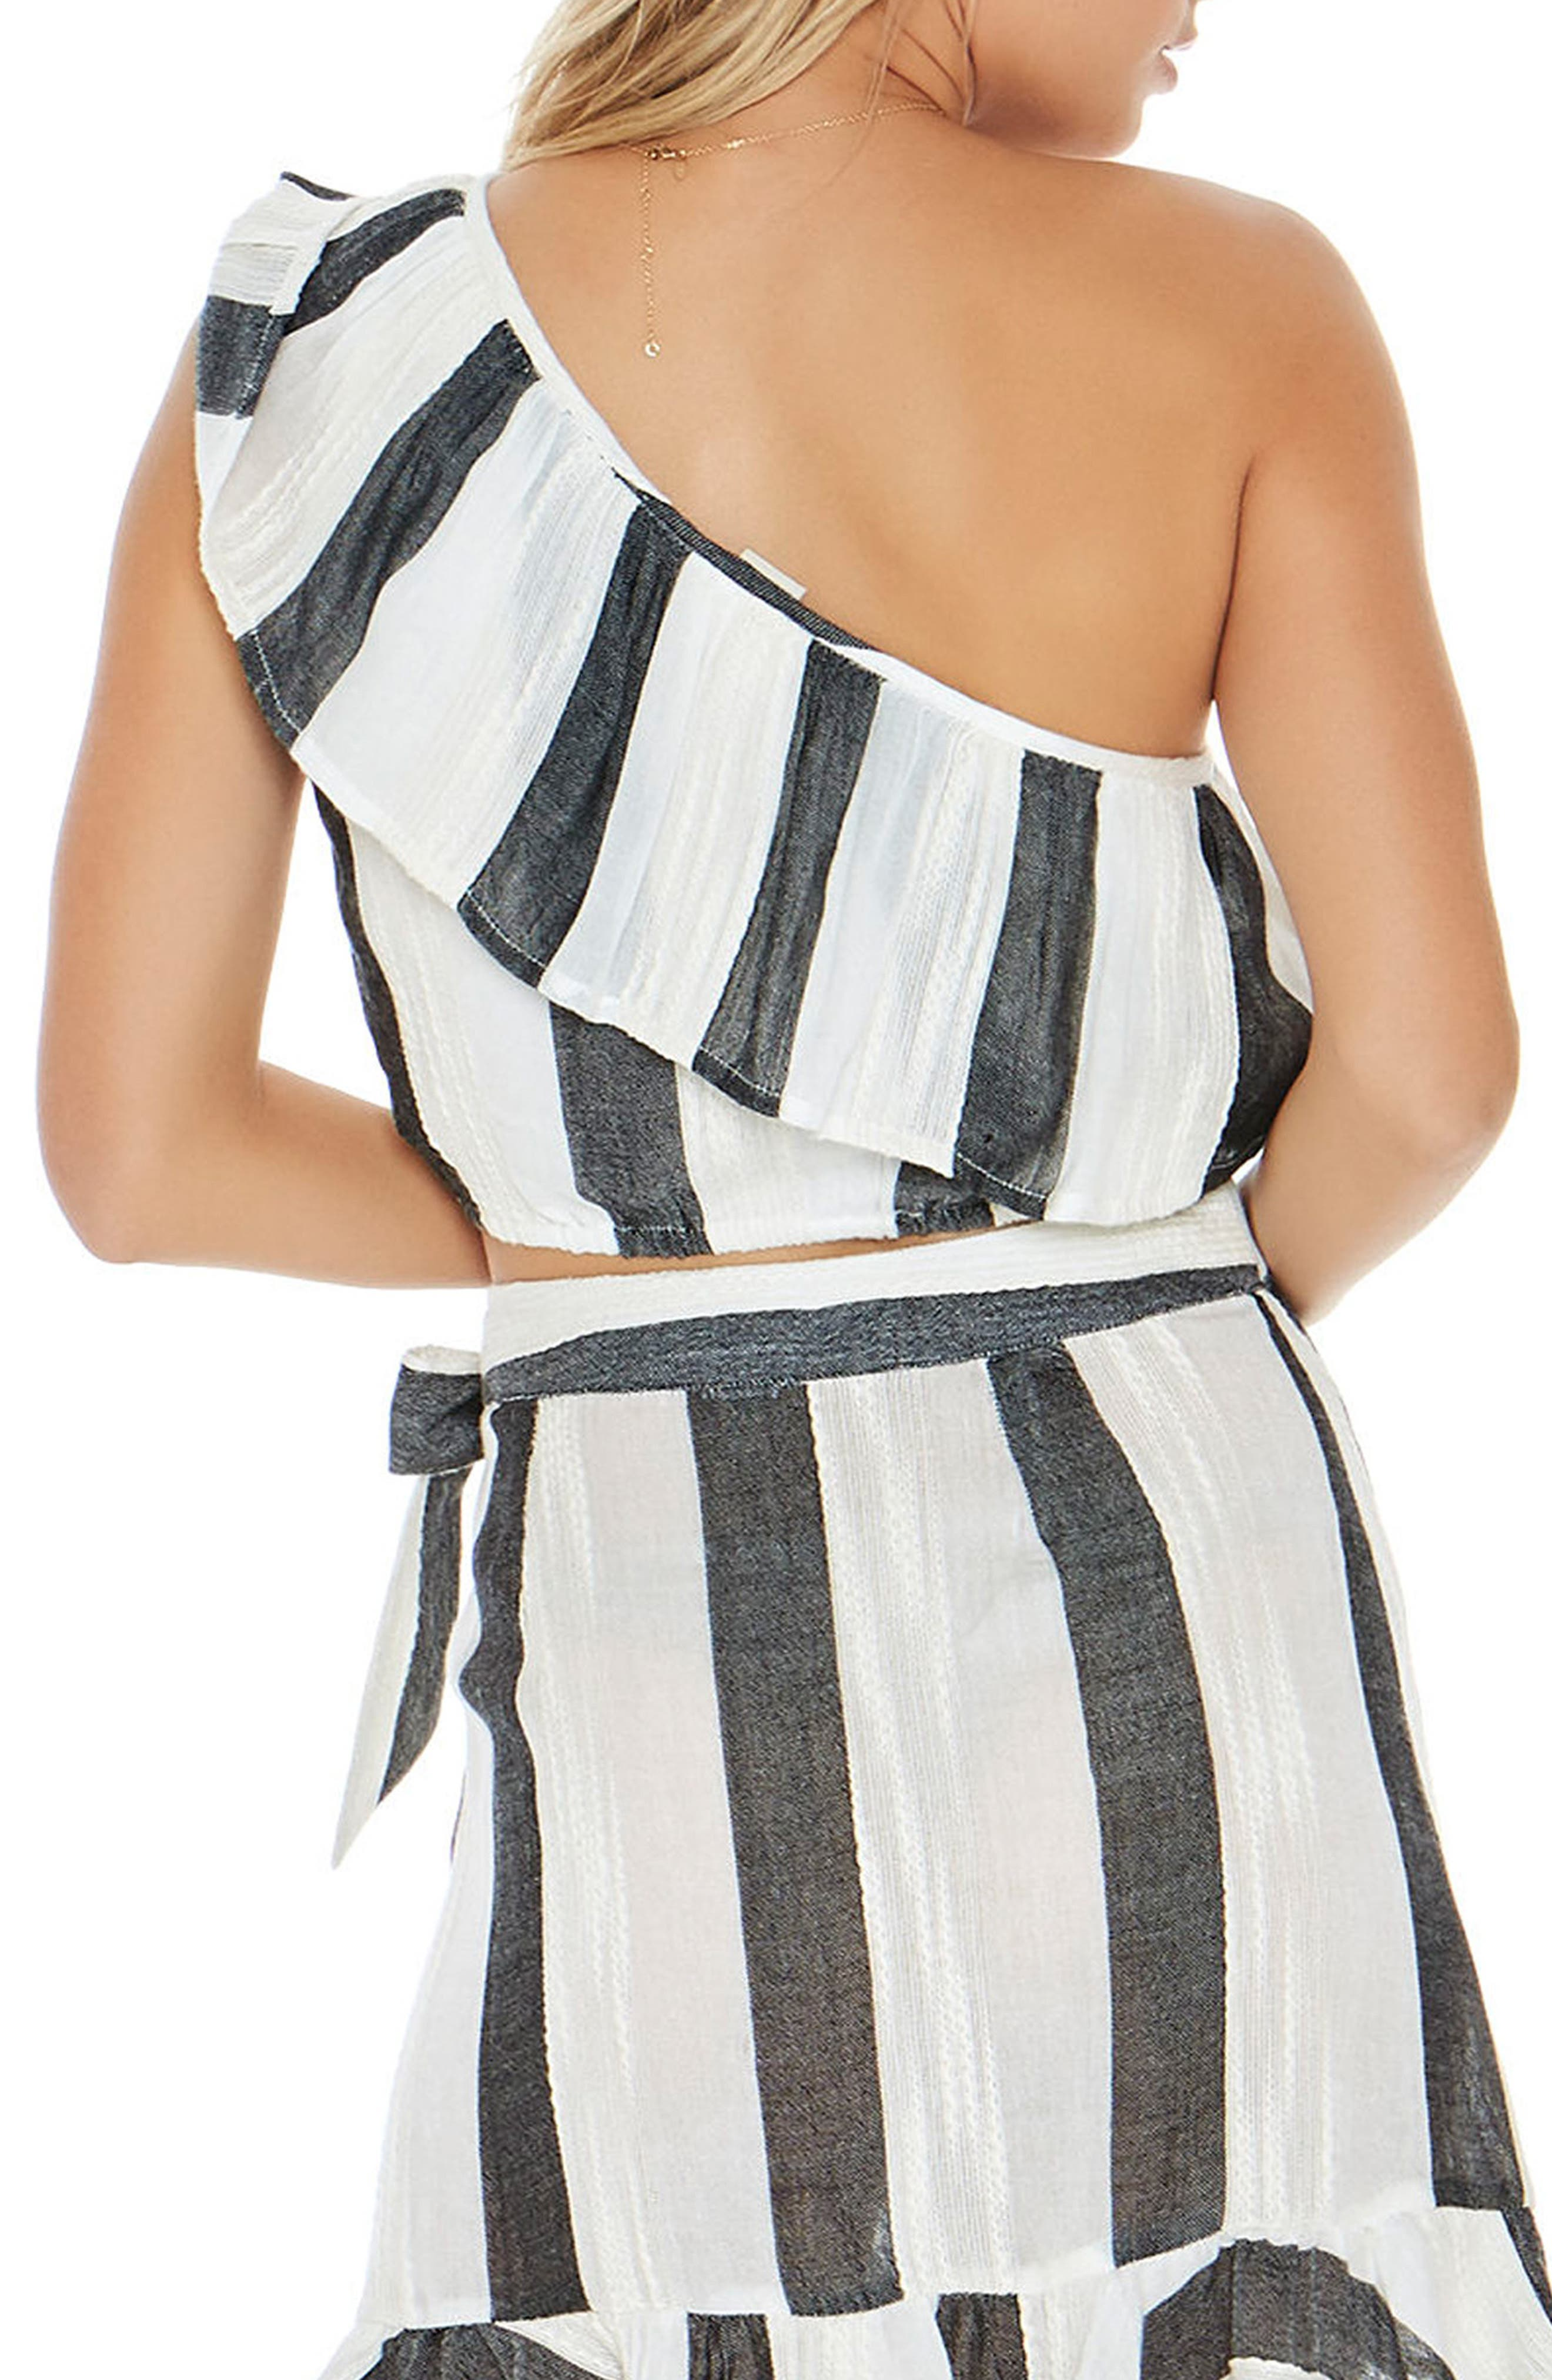 Alicia One-Shoulder Cover-Up Top,                             Alternate thumbnail 2, color,                             Beach Bum Stripe